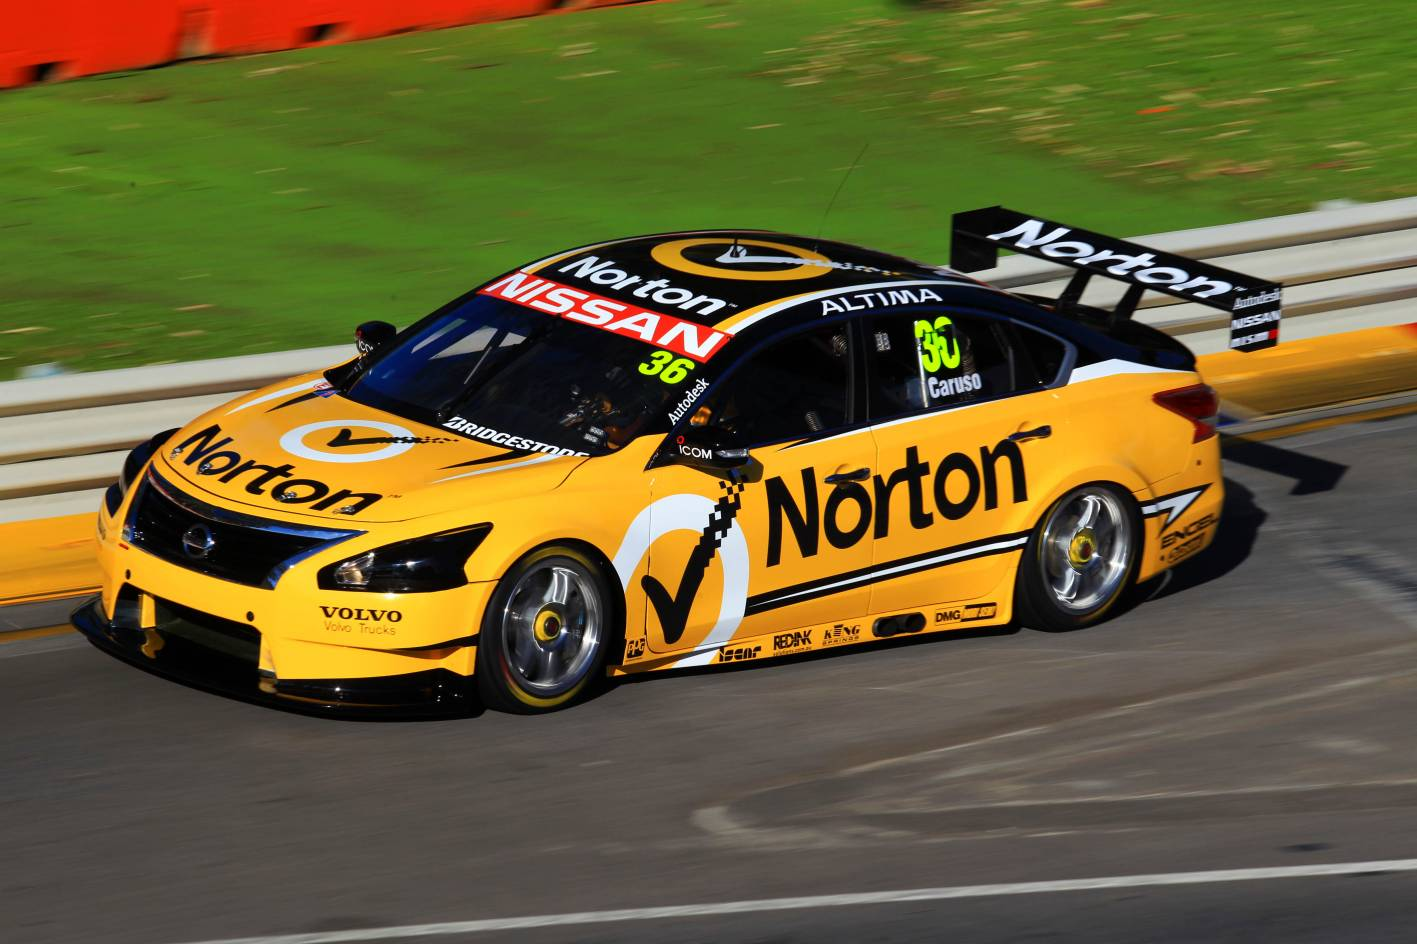 Nissan wants downsized turbos for V8 Supercars ...